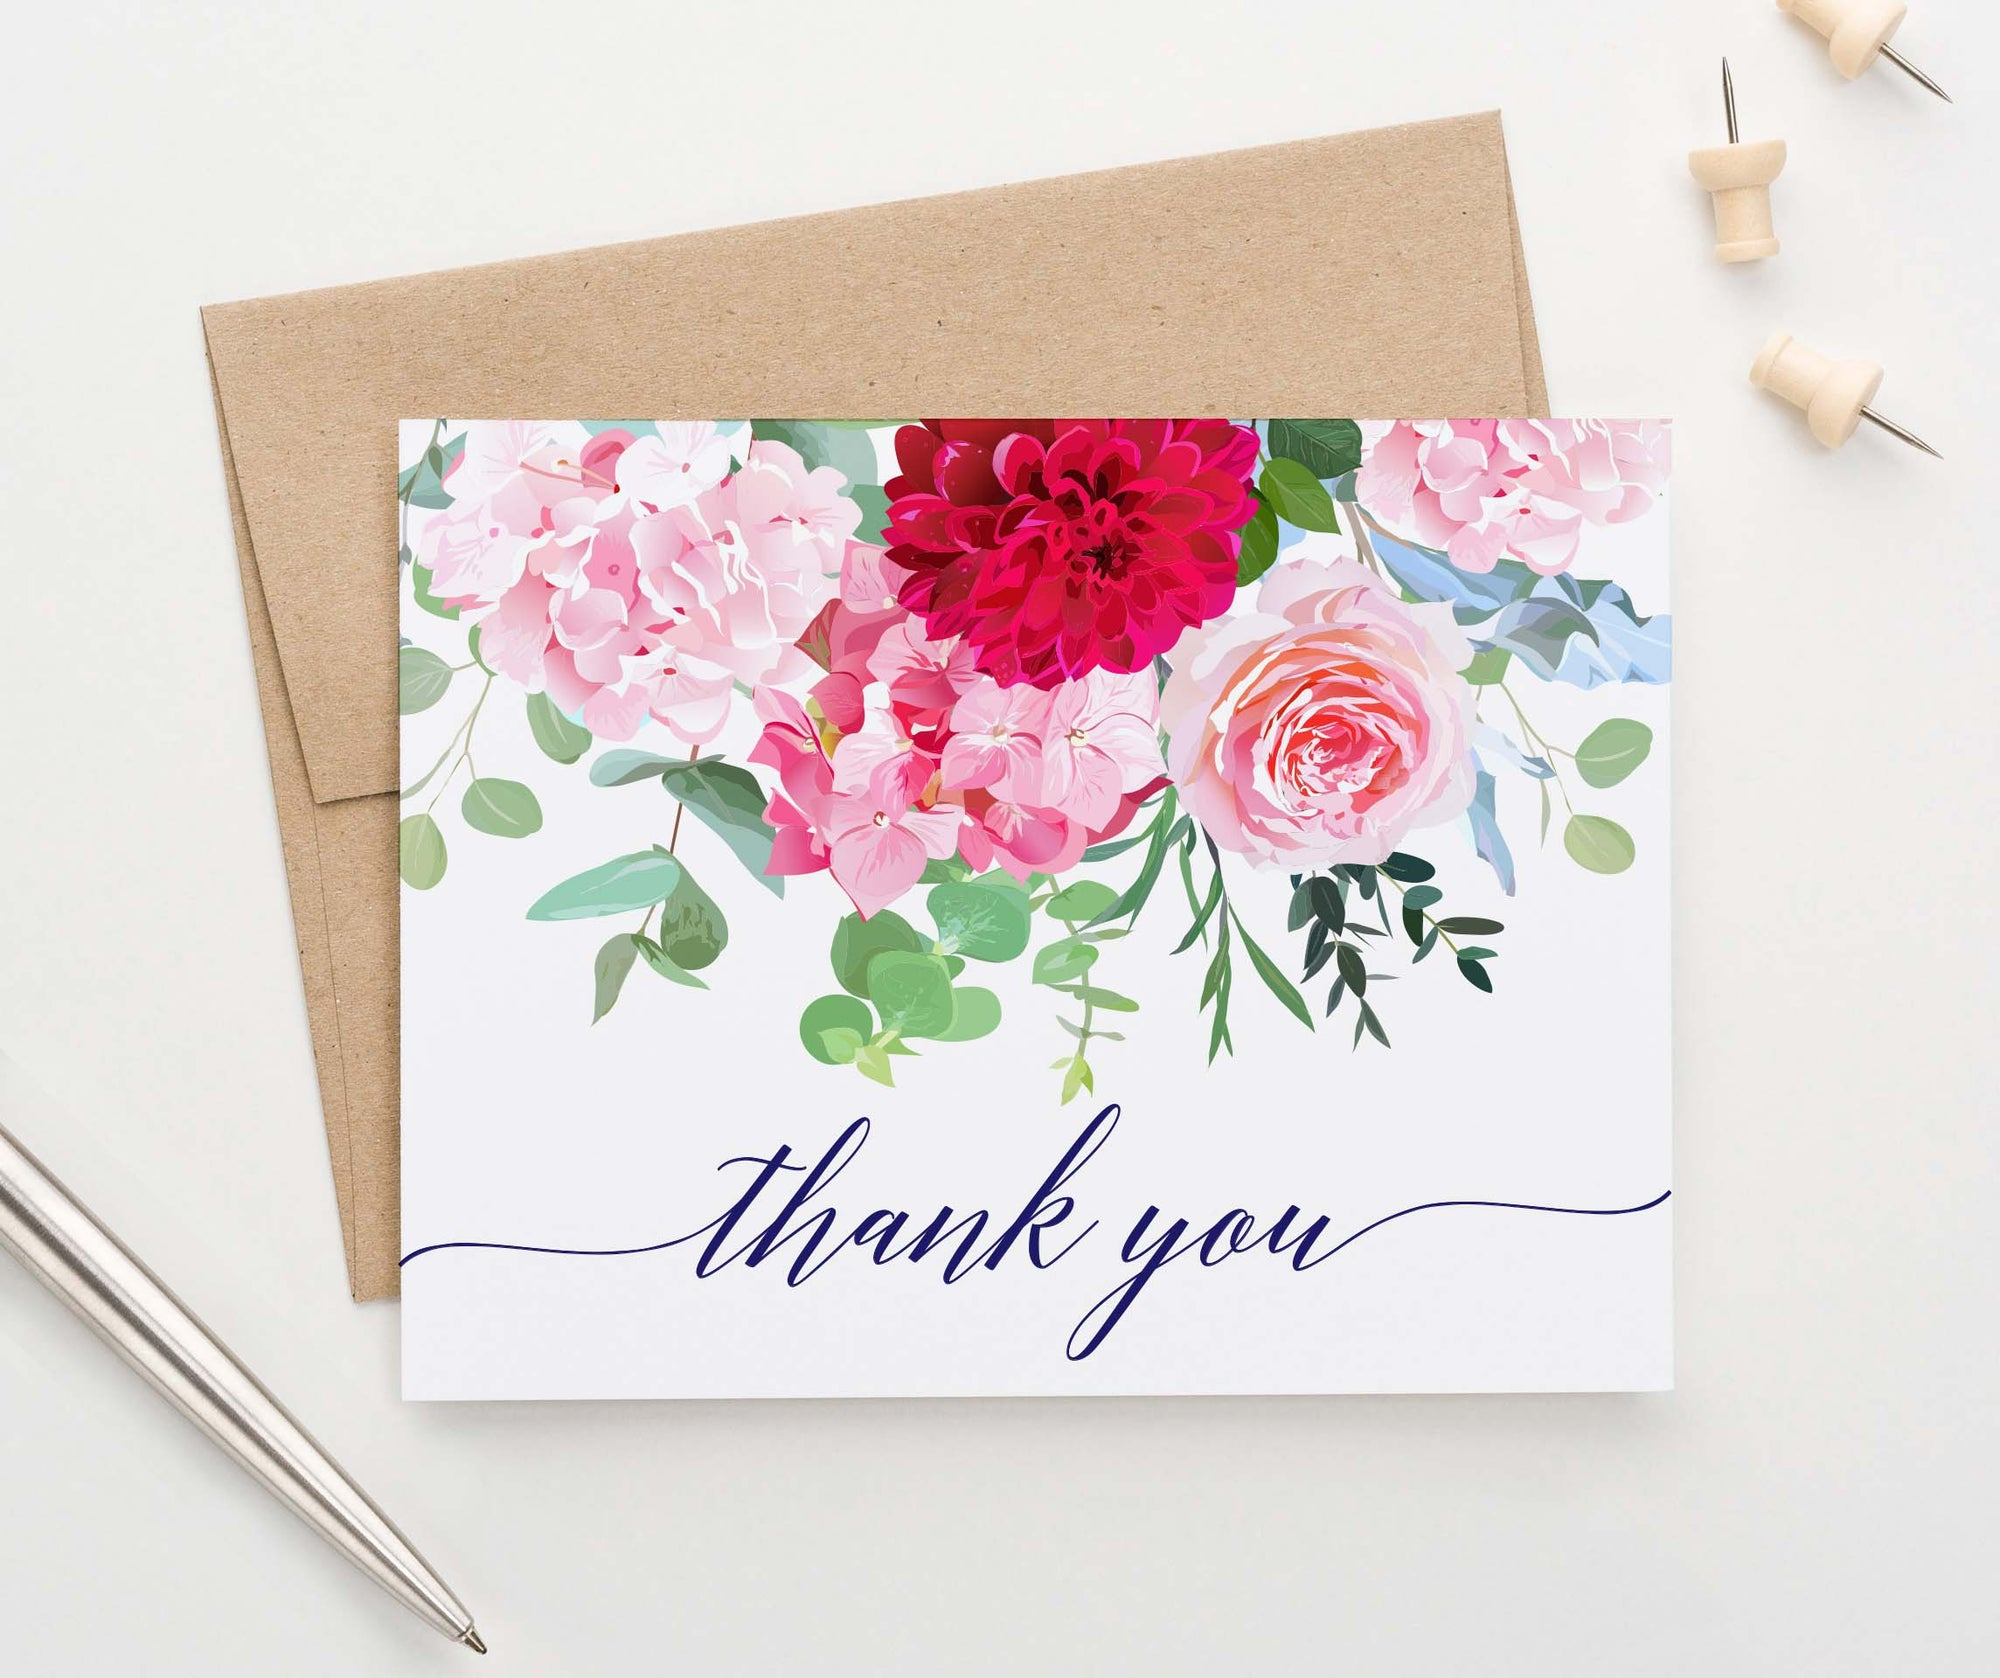 TY023 elegant floral thank you cards for wedding women script thankyou